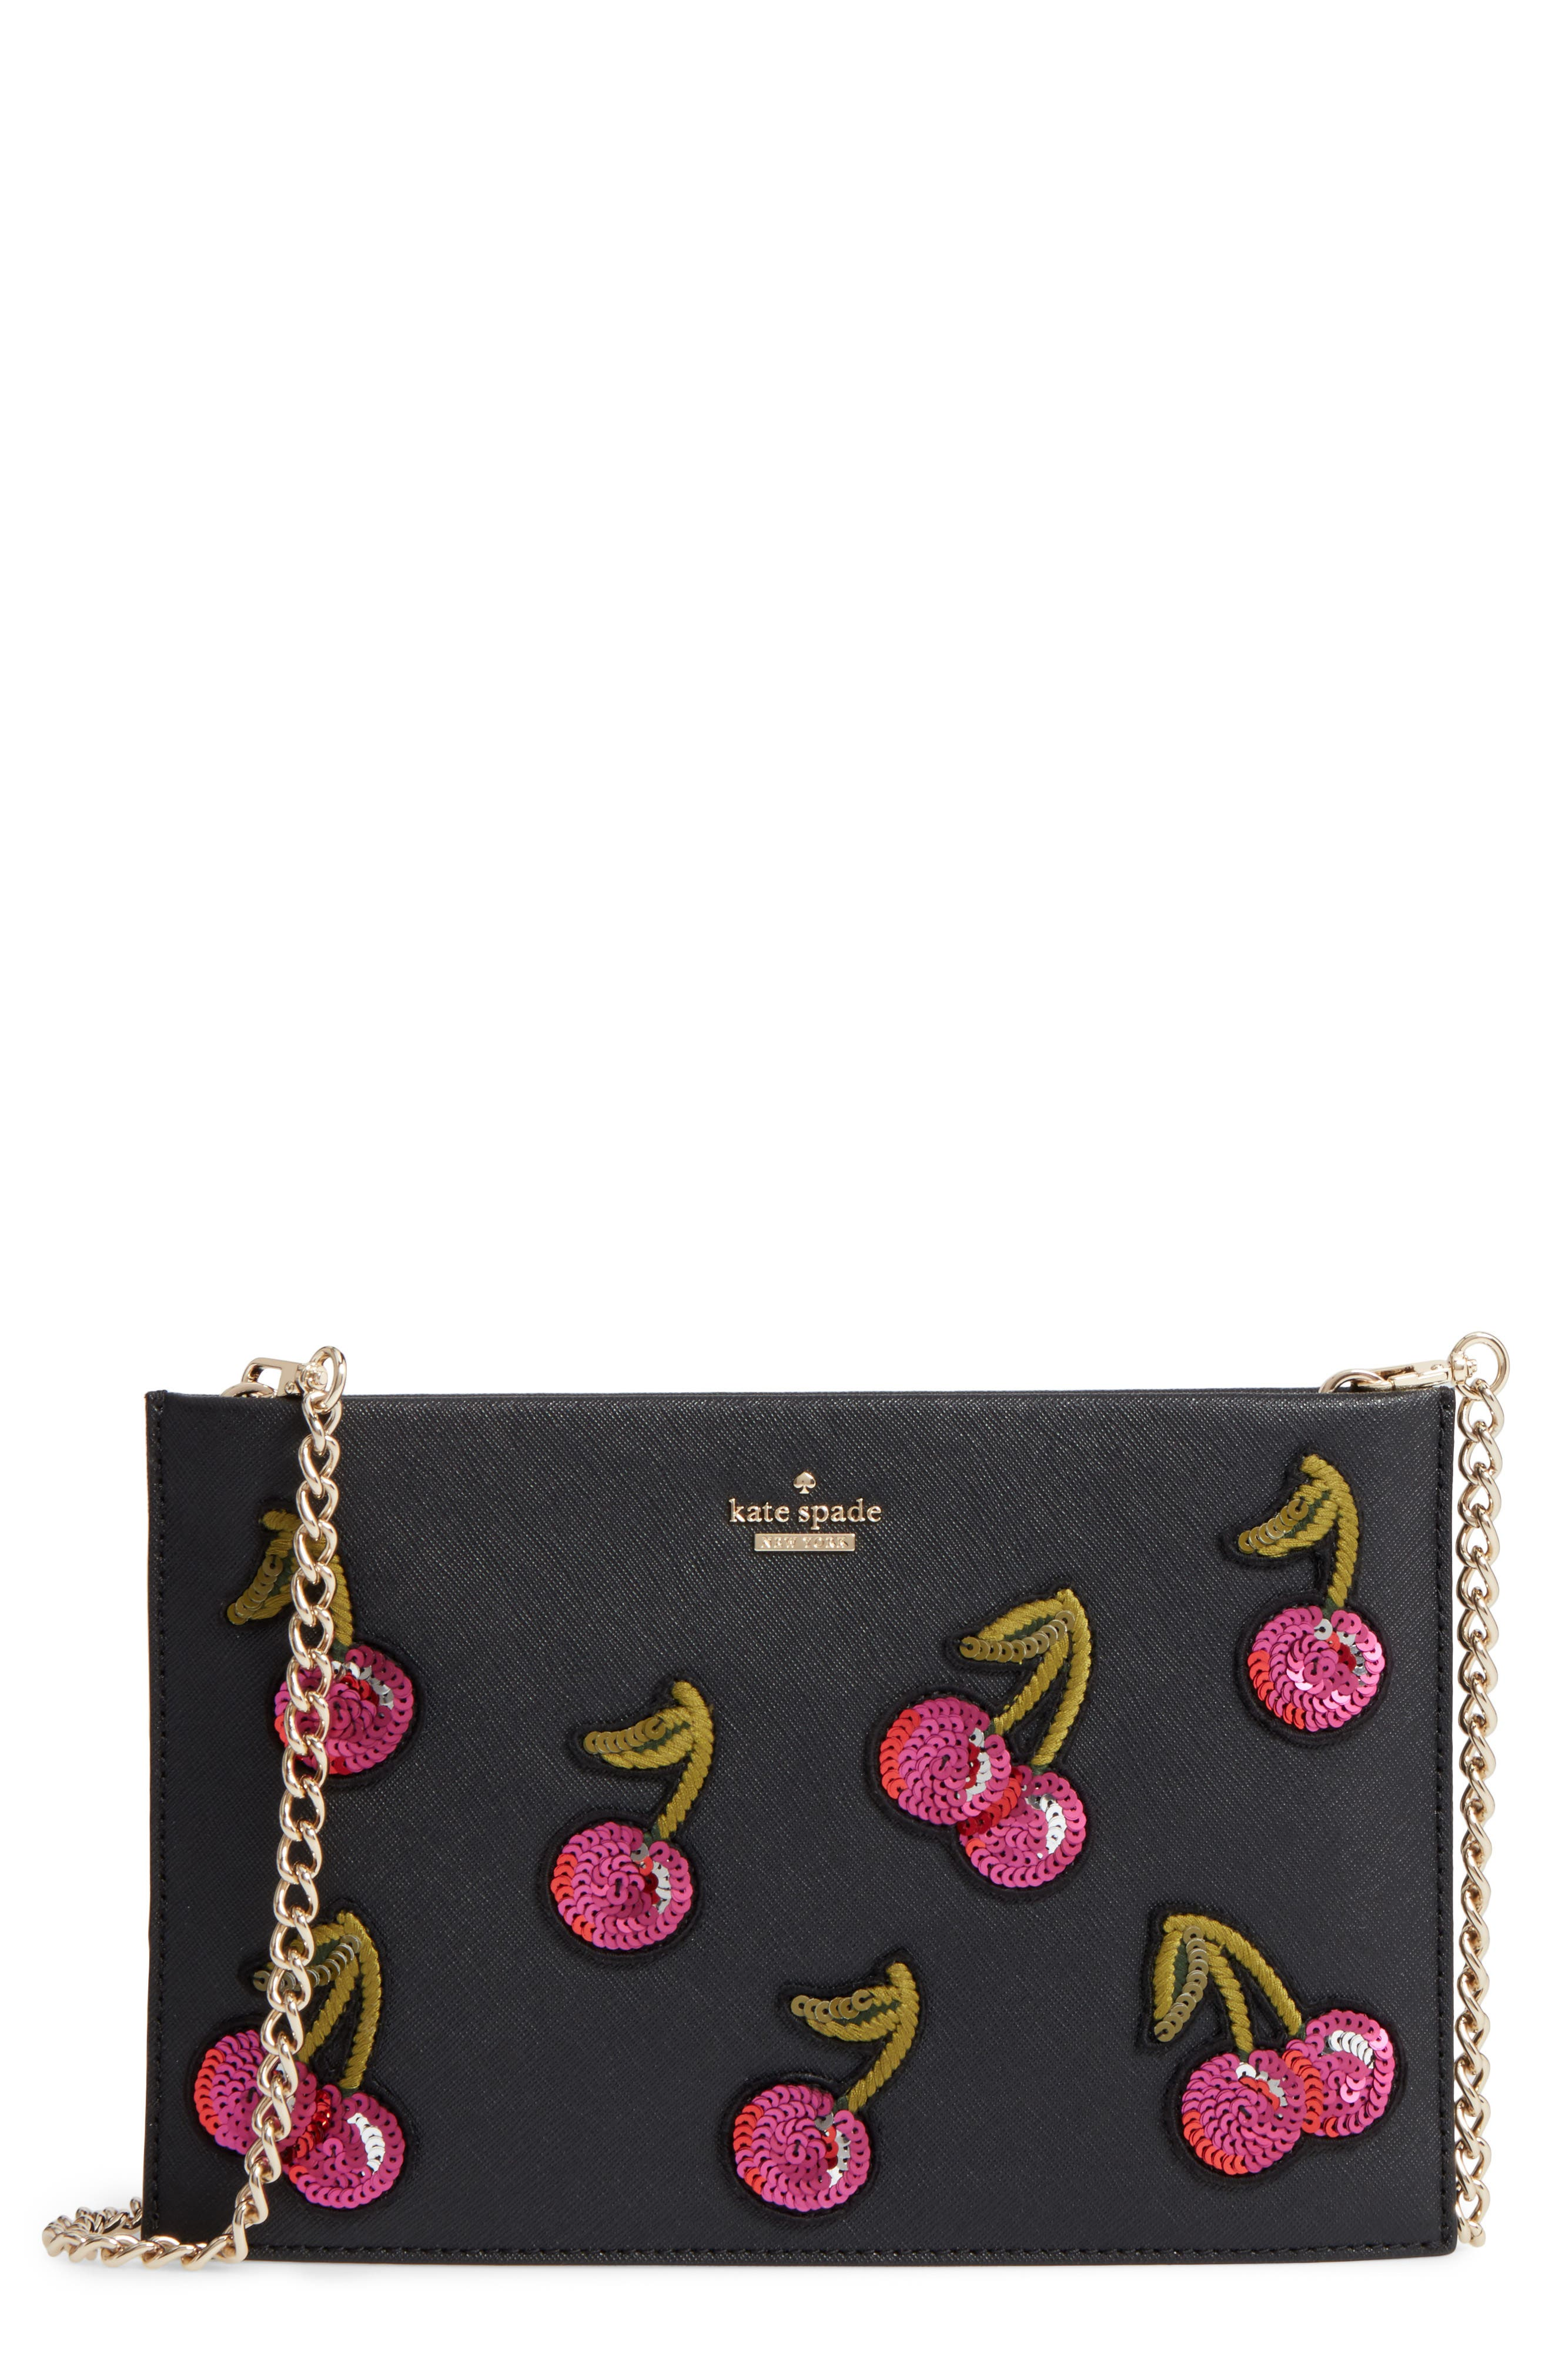 Alternate Image 1 Selected - kate spade new york ma cherie - cherries sima leather shoulder bag (Nordstrom Exclusive)